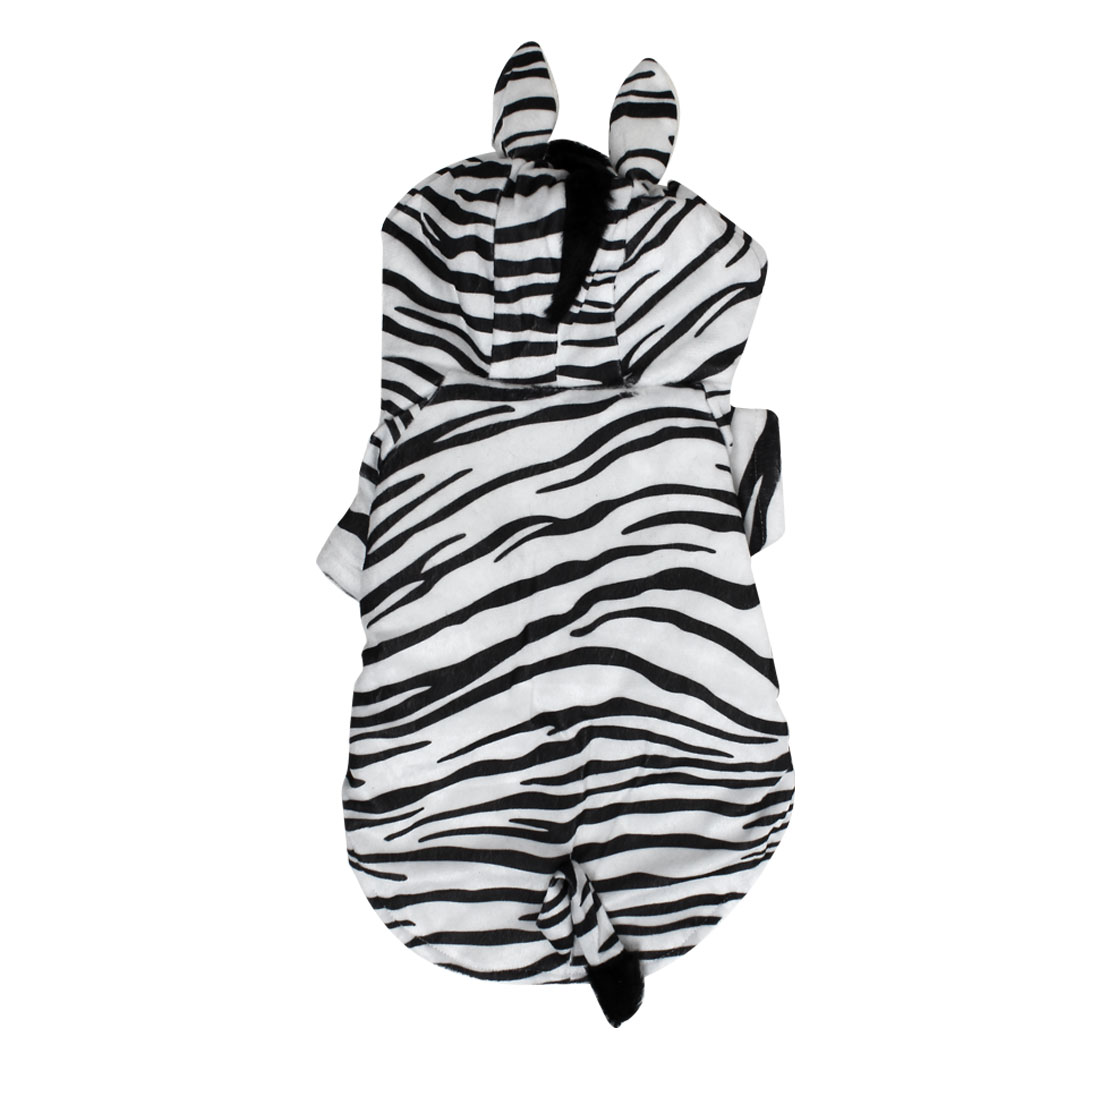 Zebra Style Pet Dogs Puppy Cosplay Hooded Coat Clothes Costume Black White Size M